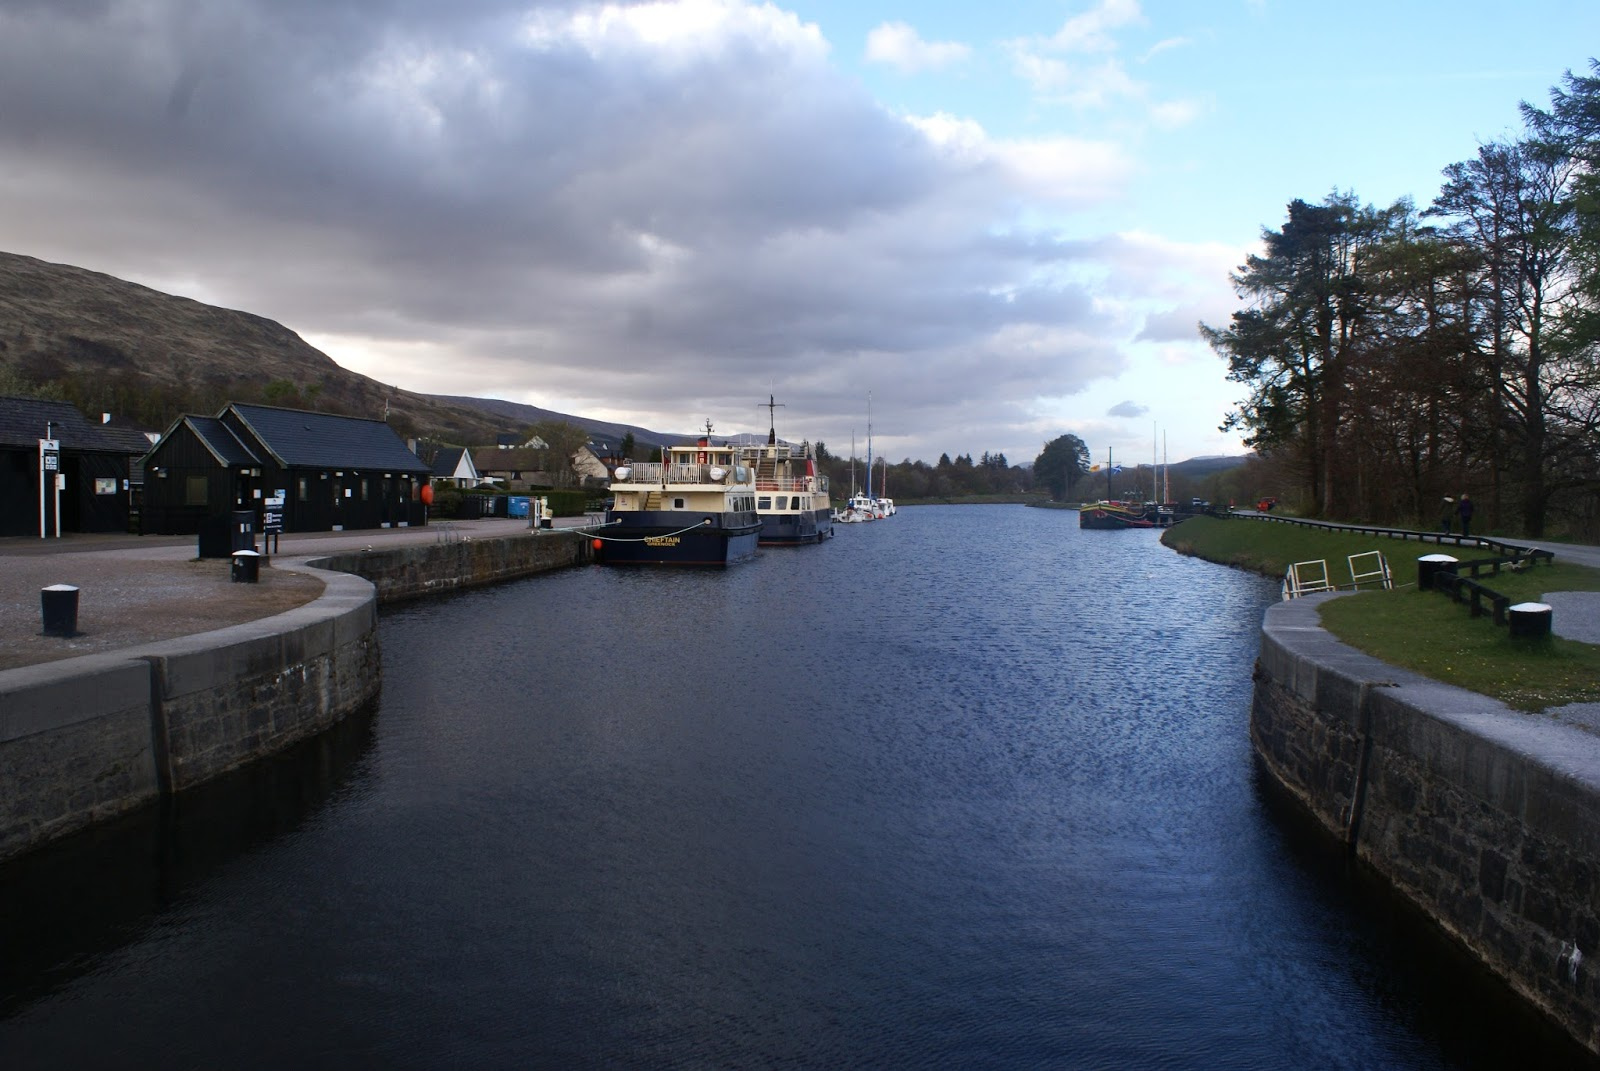 caledonian canal corpach fort william scotland uk